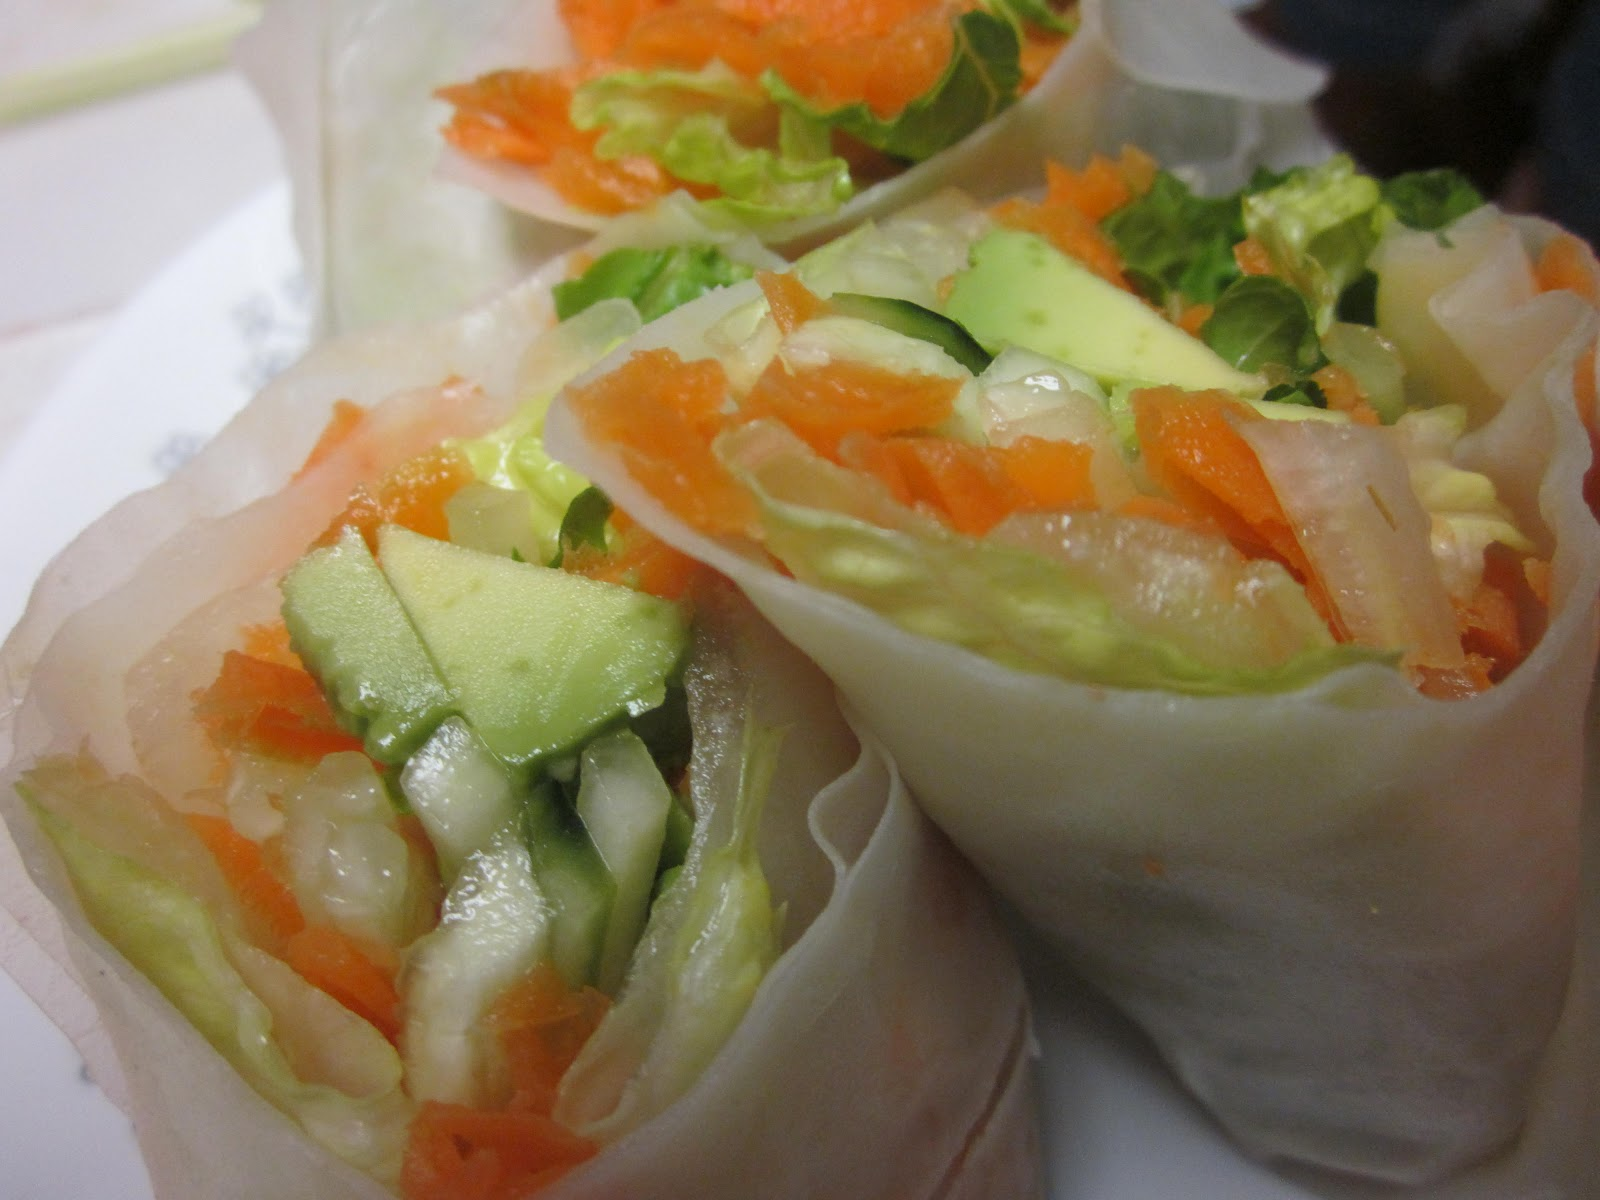 Cucumber And Avocado Summer Rolls With Mustard-Soy Sauce Recipes ...